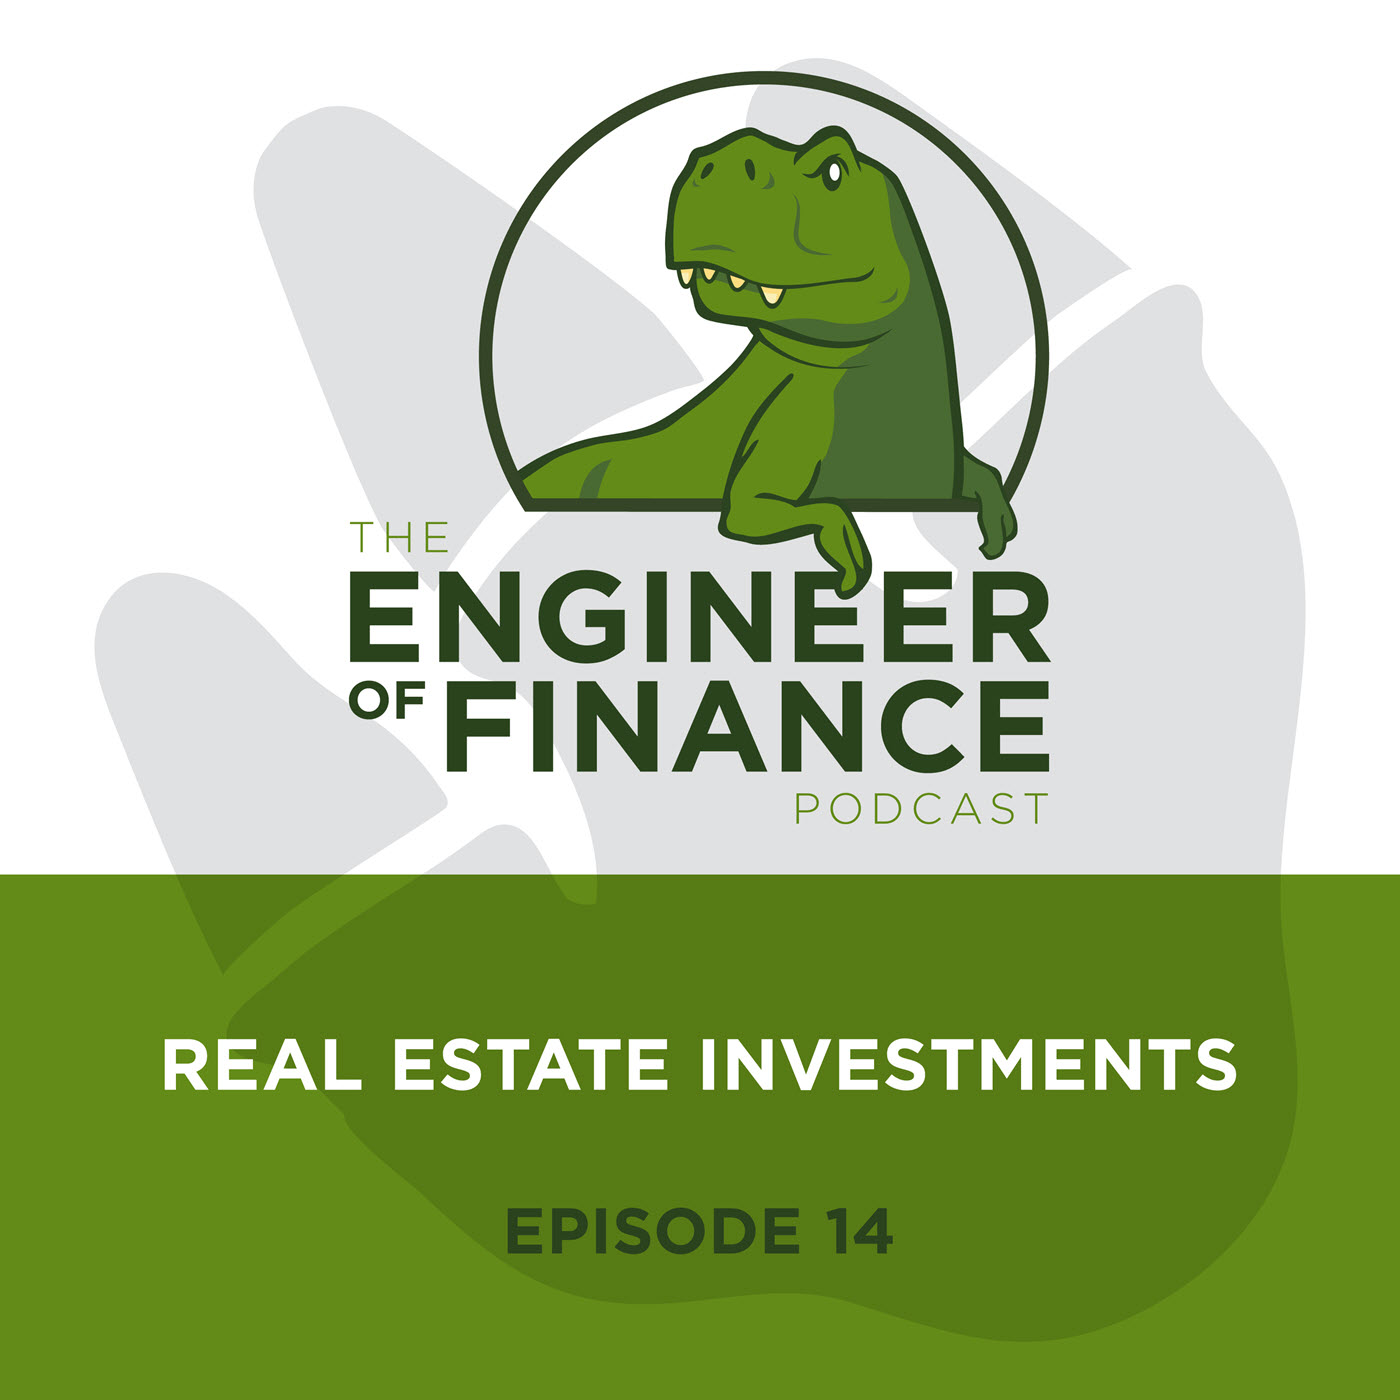 Real Estate Investments – Episode 14